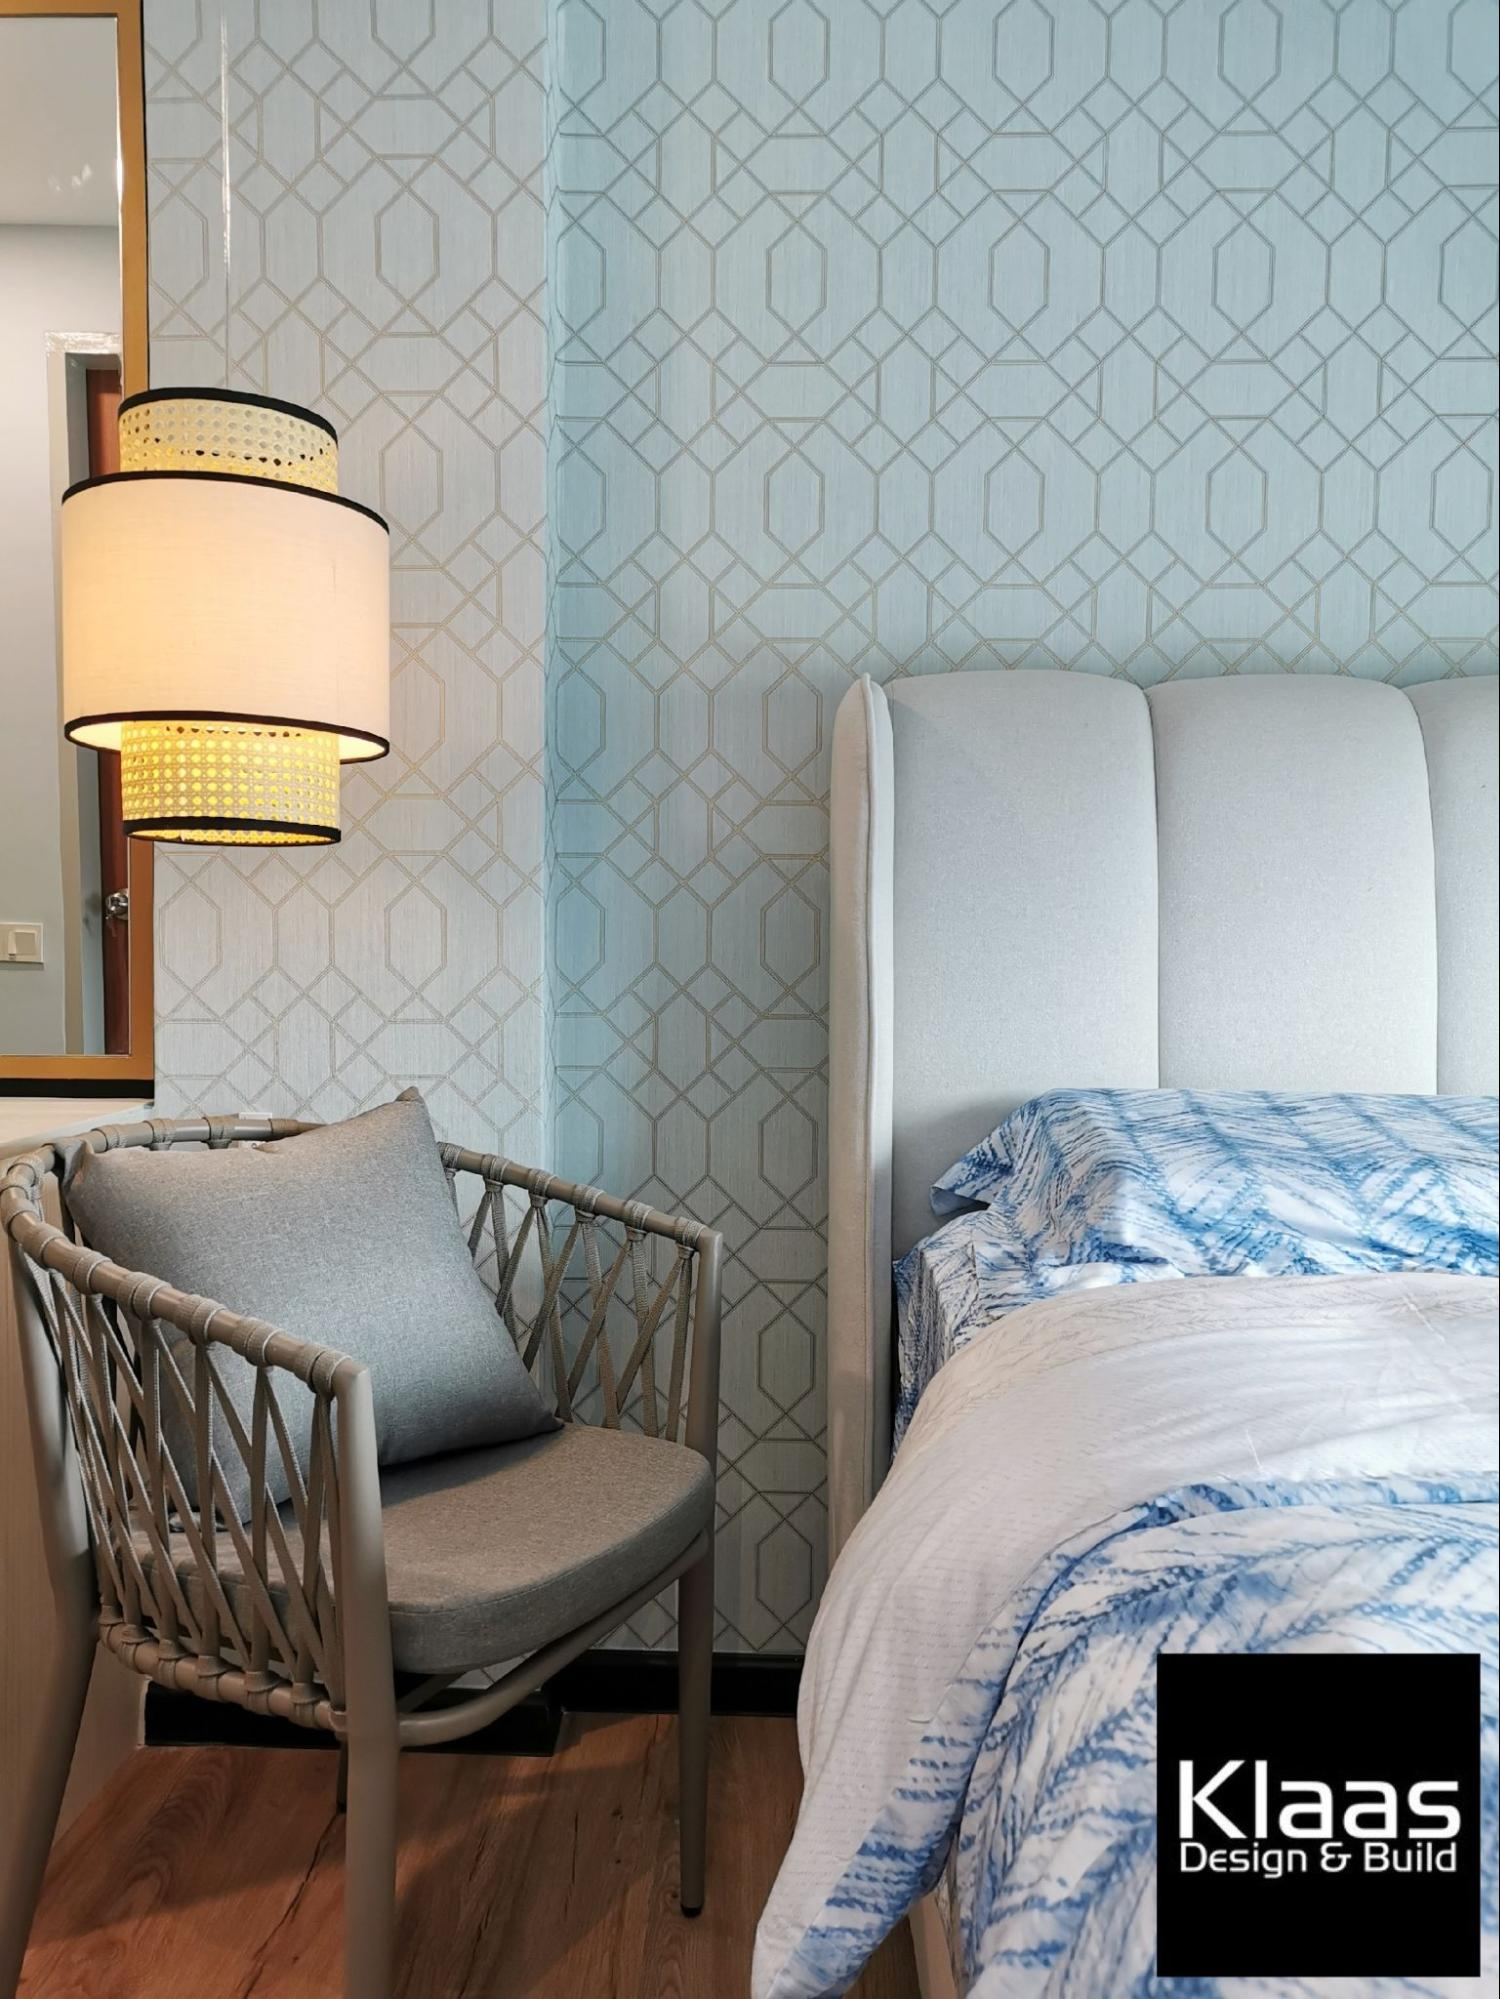 Close-up of bedside lamp in a blue bedroom